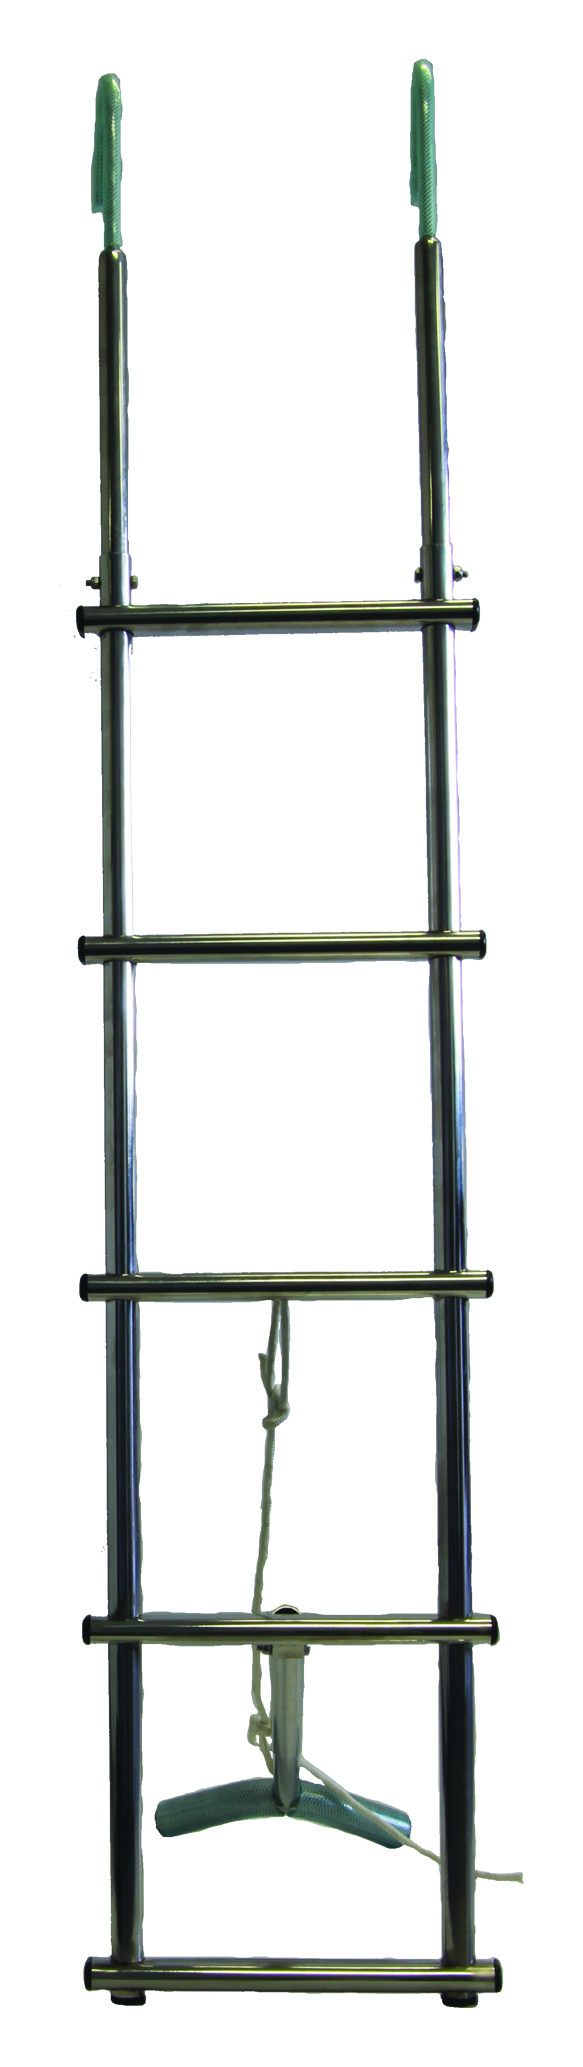 Talamex Steel Ladder With Hooks 5 Steps